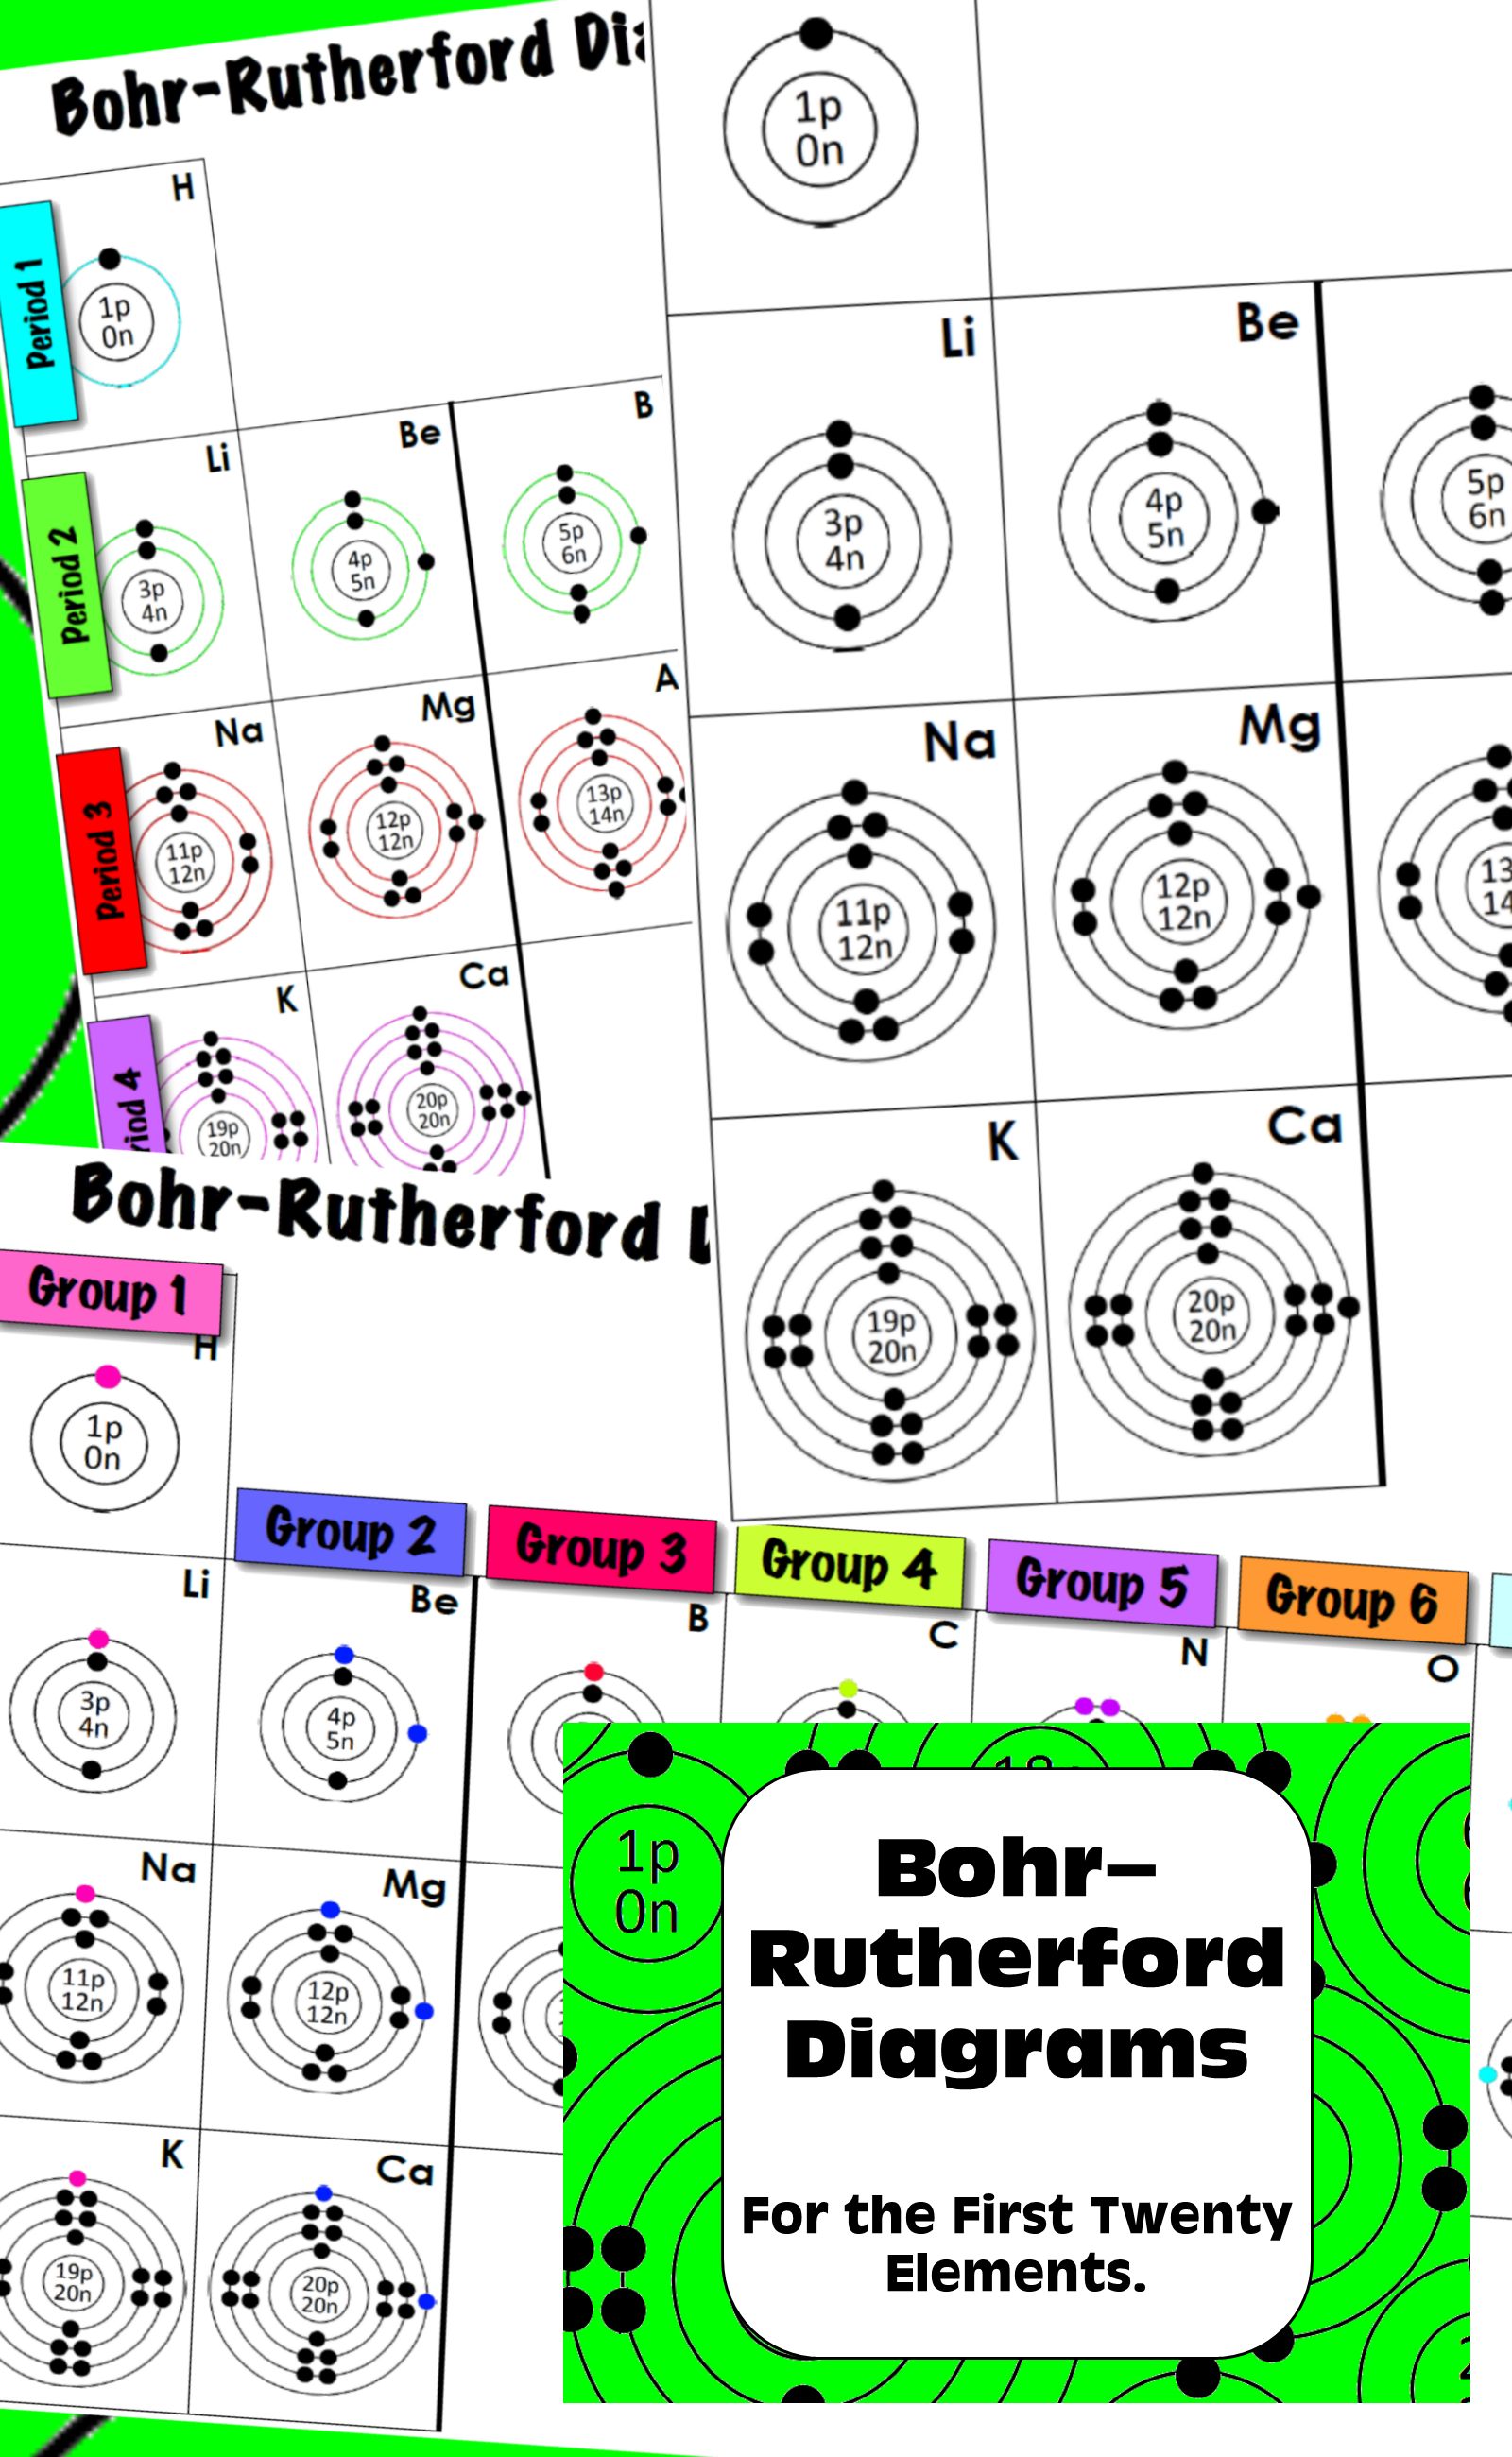 small resolution of bohr rutherford diagrams for first twenty elements student graphical organizer color coded answers elements periodictable bohr rutherford chemistry